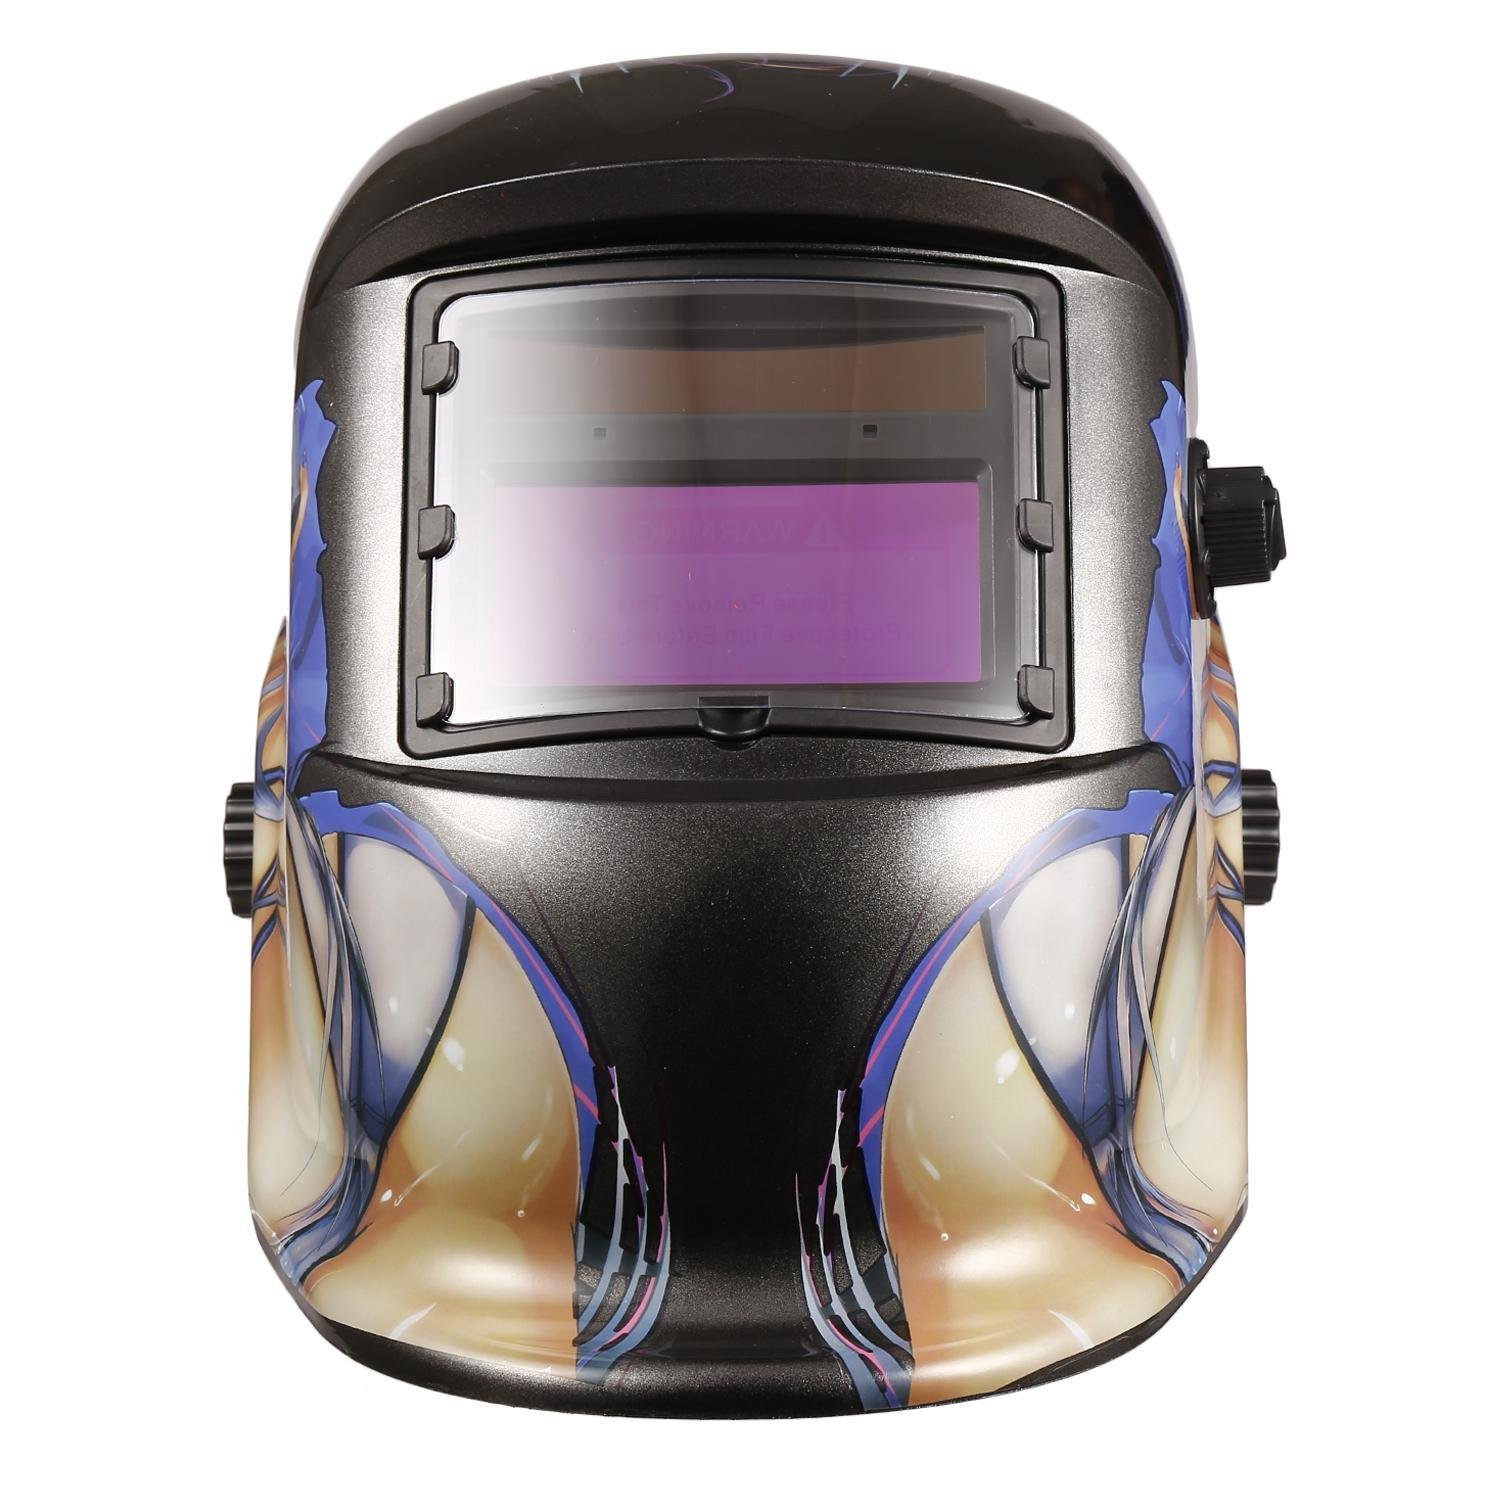 72c9d917328c2 Welding Helmet Solar Arc Tig Mig Auto-Darkening Welding Hood Mask Hats  (blue)... (black3) - - Amazon.com